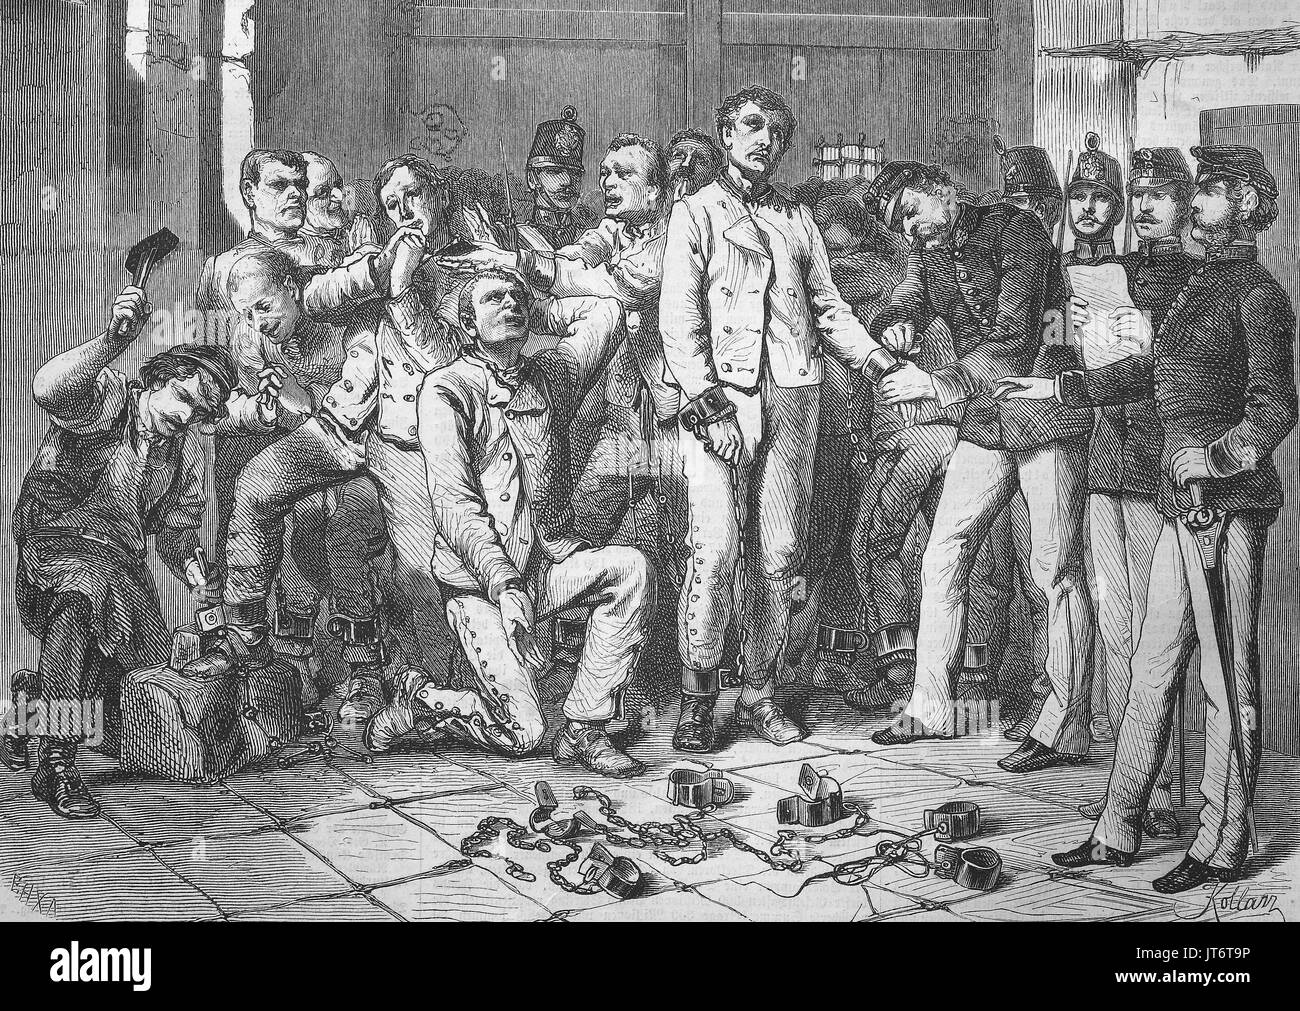 Chain penalty. The liberation from the chain punishment in Austria by Empress Elisabeth of Austria on November 19, 1867. The prisoners are taken from the chains, Digital improved reproduction of an image published between 1880 - 1885 - Stock Image